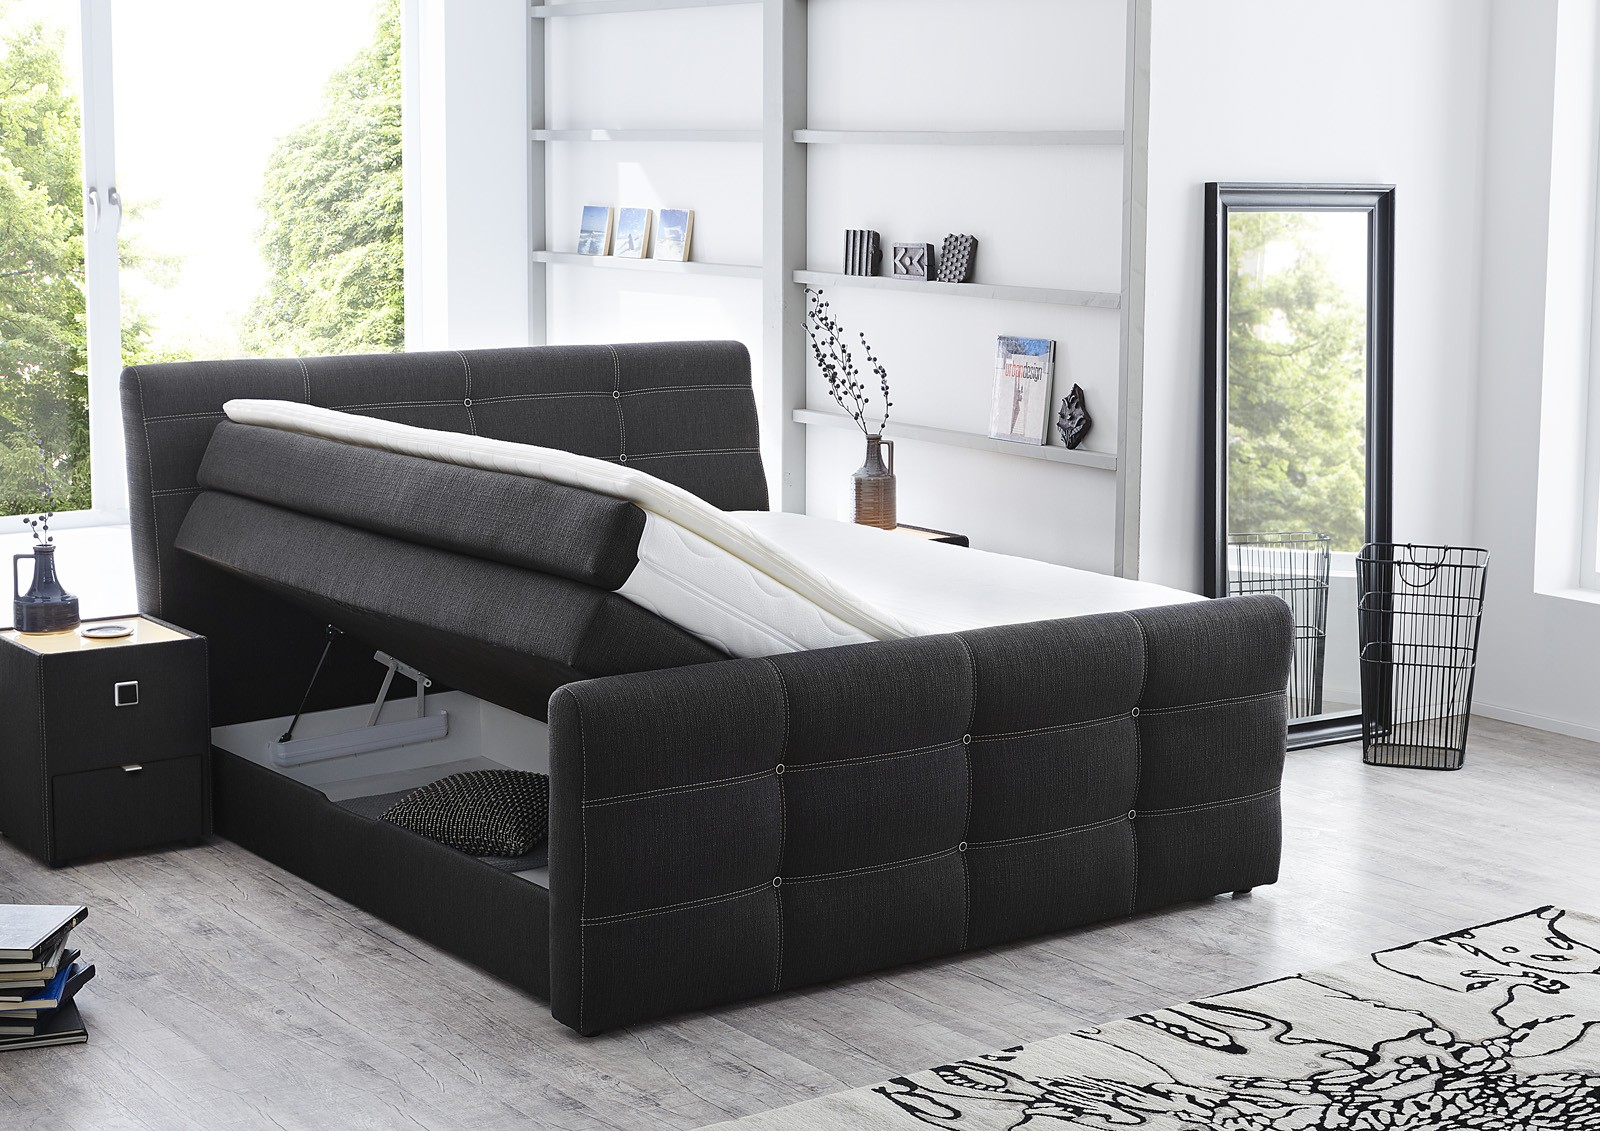 boxspringbett mit bettkasten 140x200 m bel ideen und. Black Bedroom Furniture Sets. Home Design Ideas